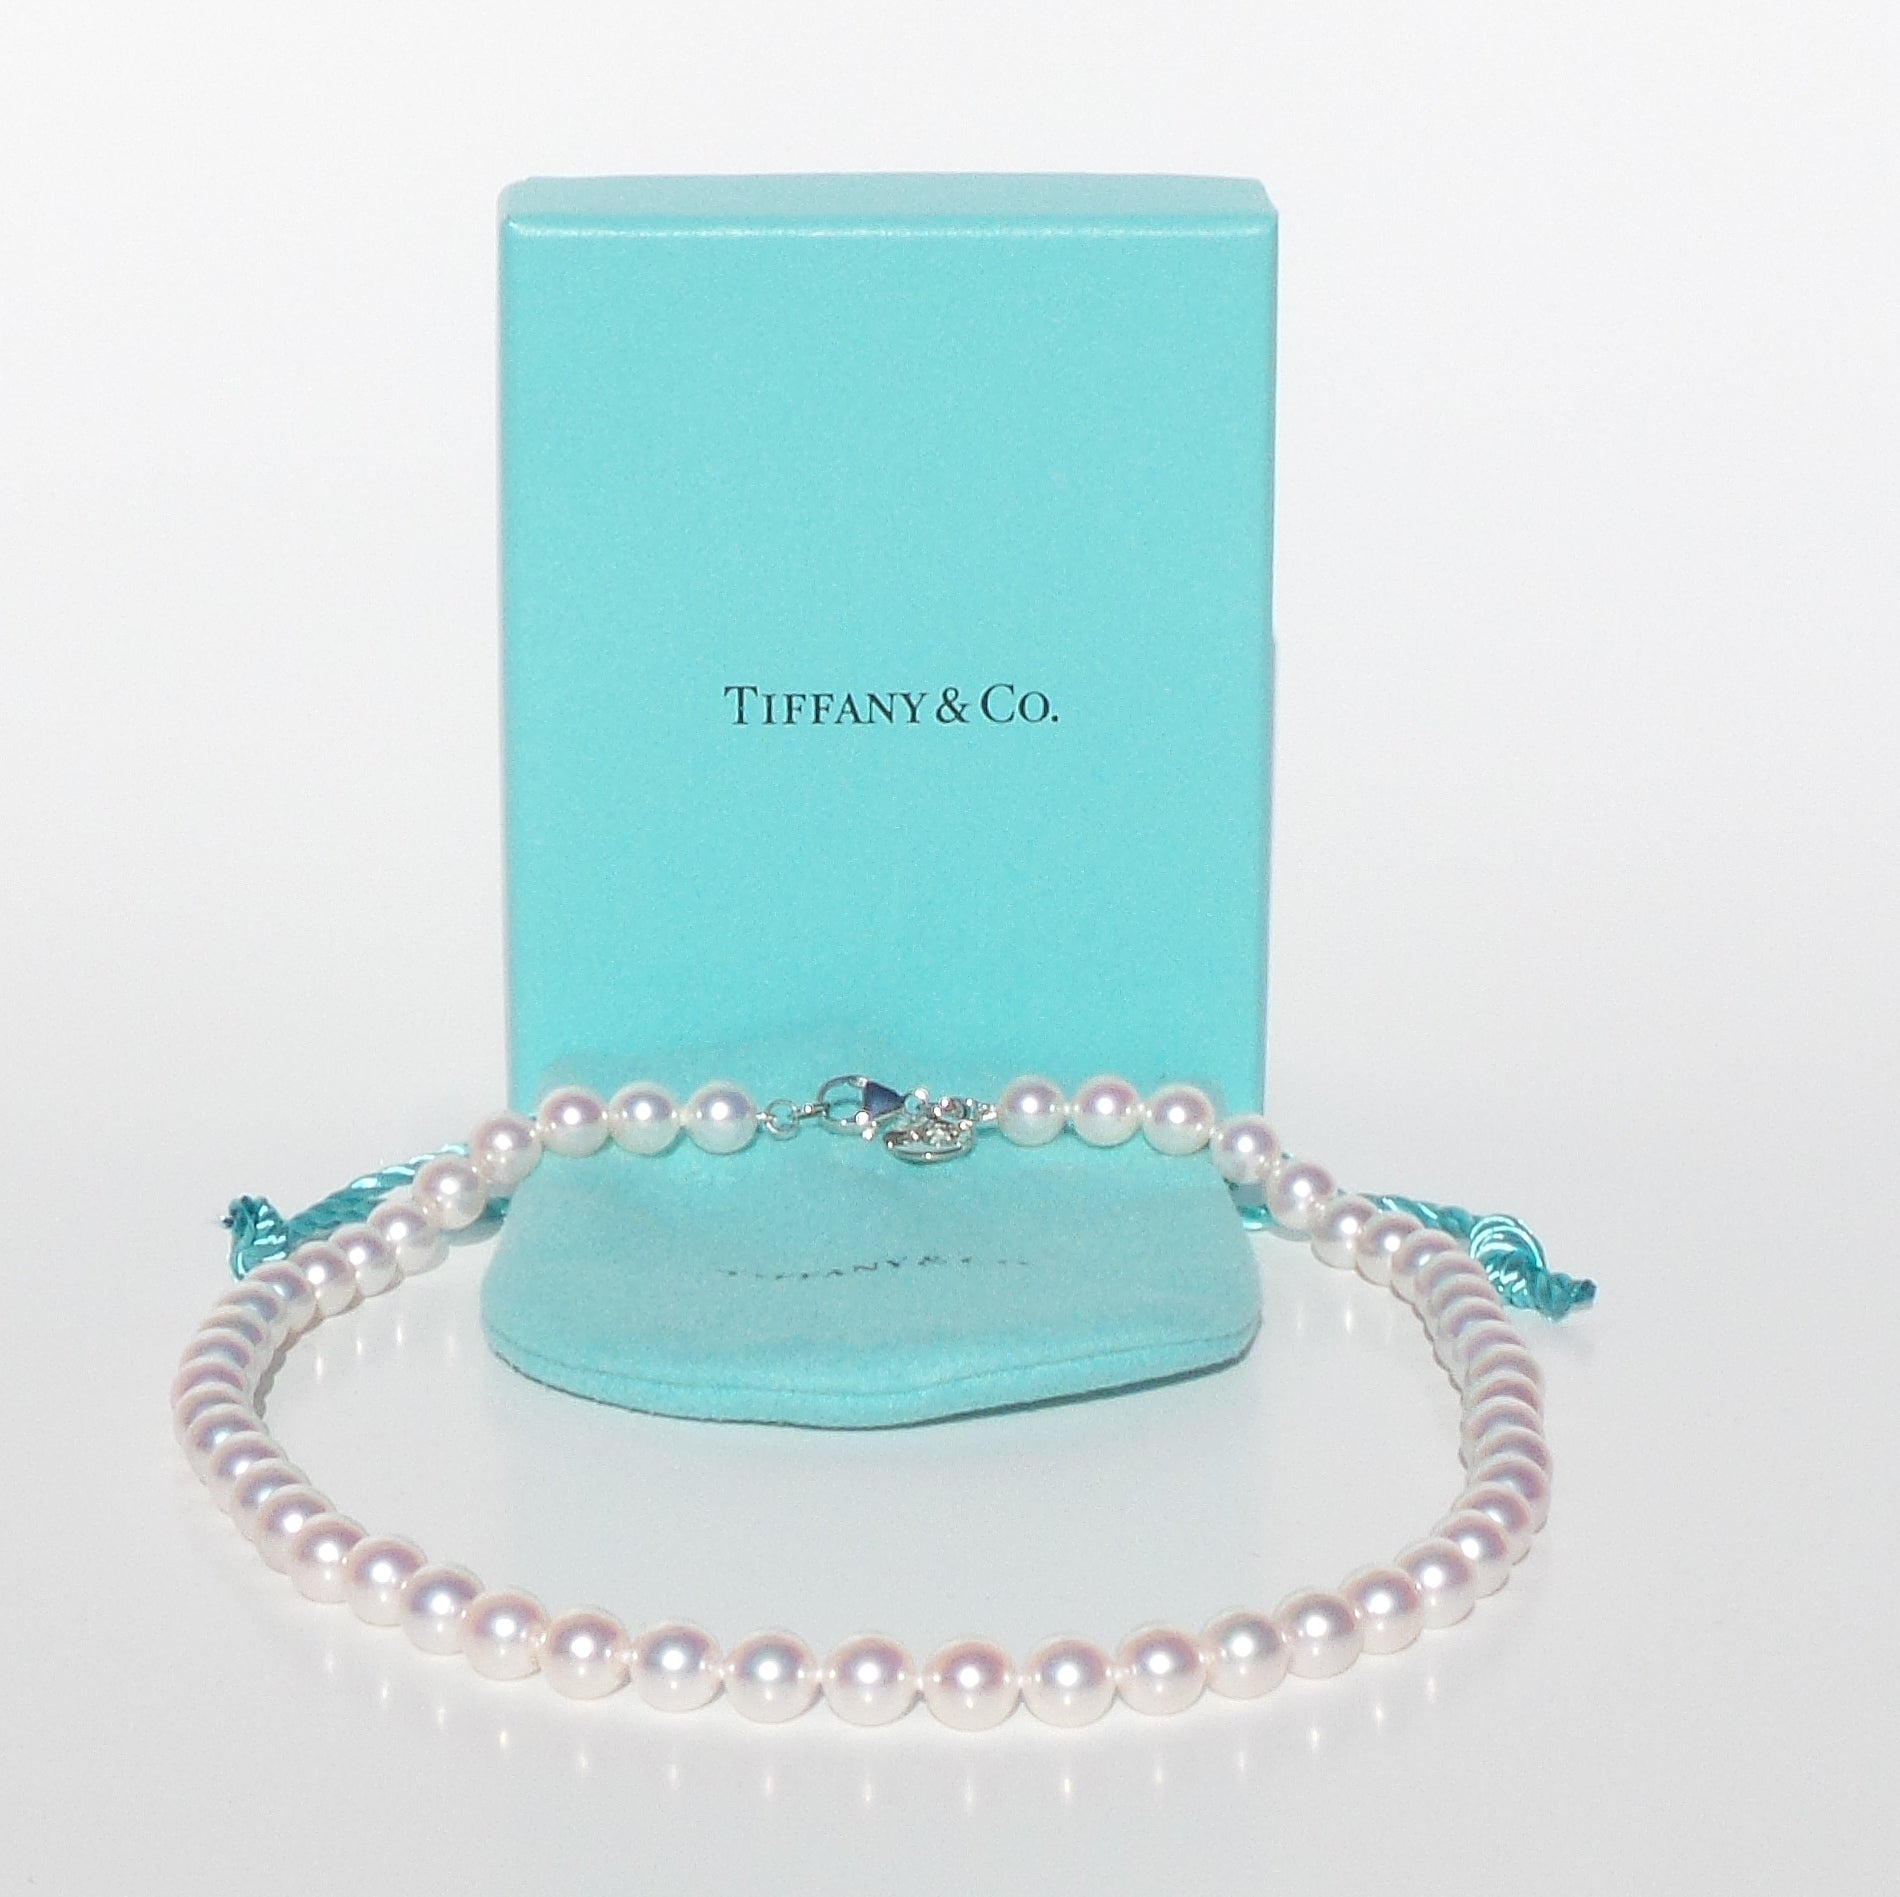 "'Sold' TIFFANY & CO Akoya Cultured White Gold Clasp 16"" Essential Pearls Necklace $1750"